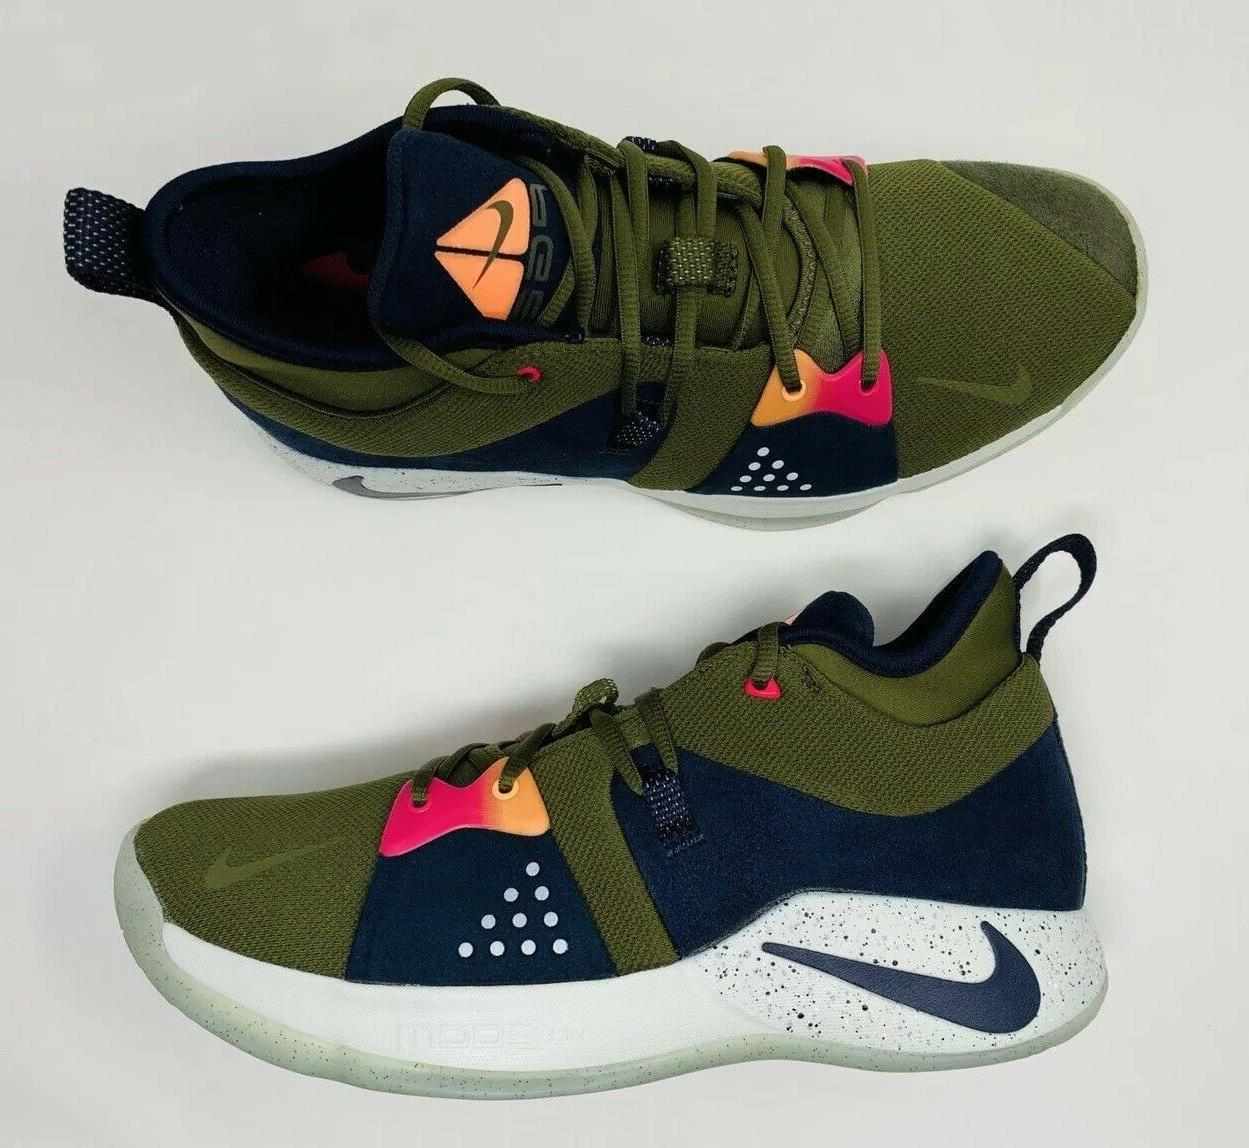 Nike Olive George Shoes AJ2039-300 Size 11